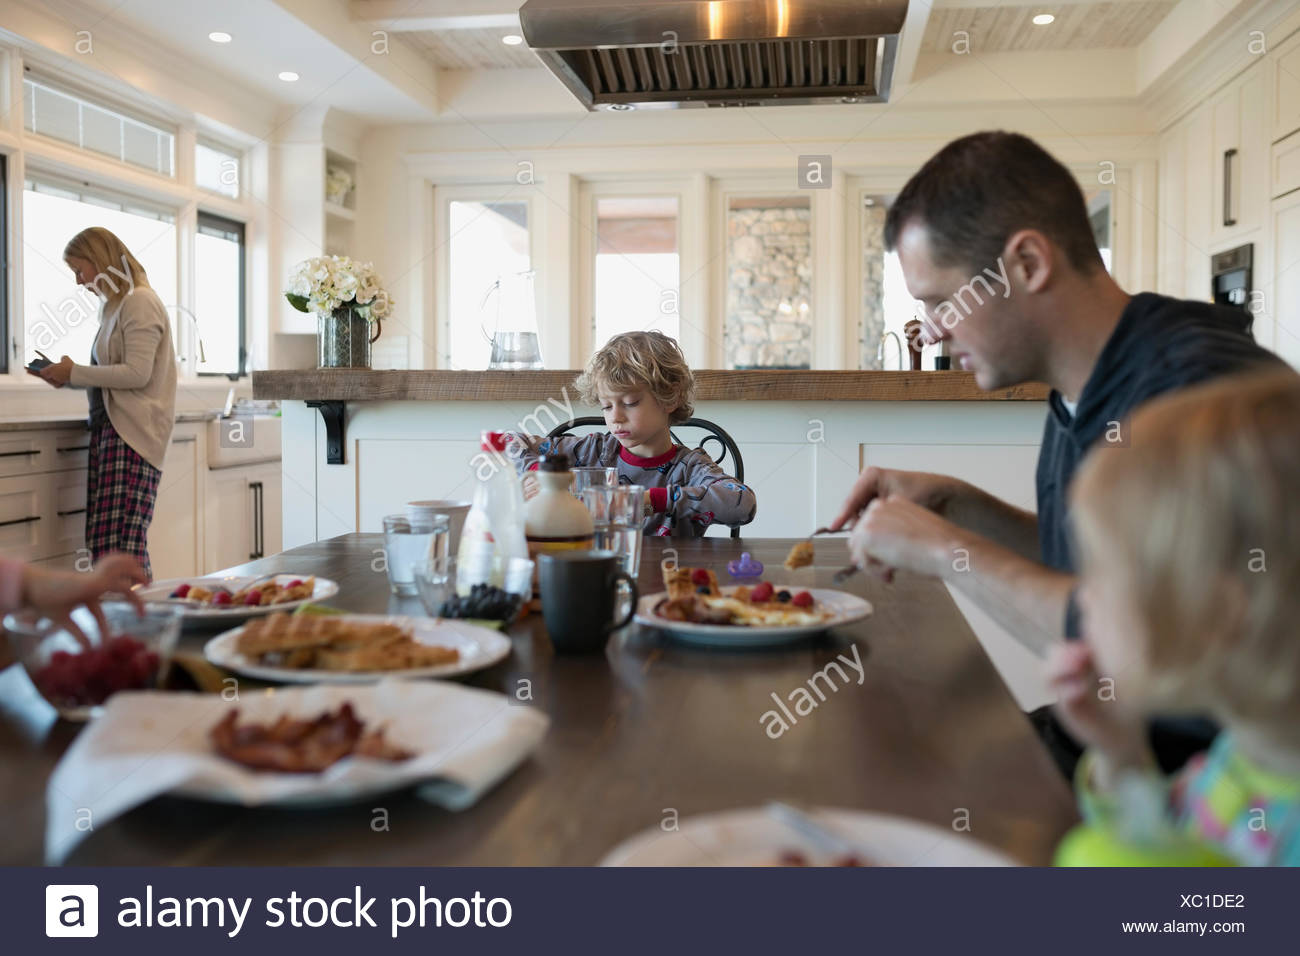 Family eating waffles at breakfast table - Stock Image